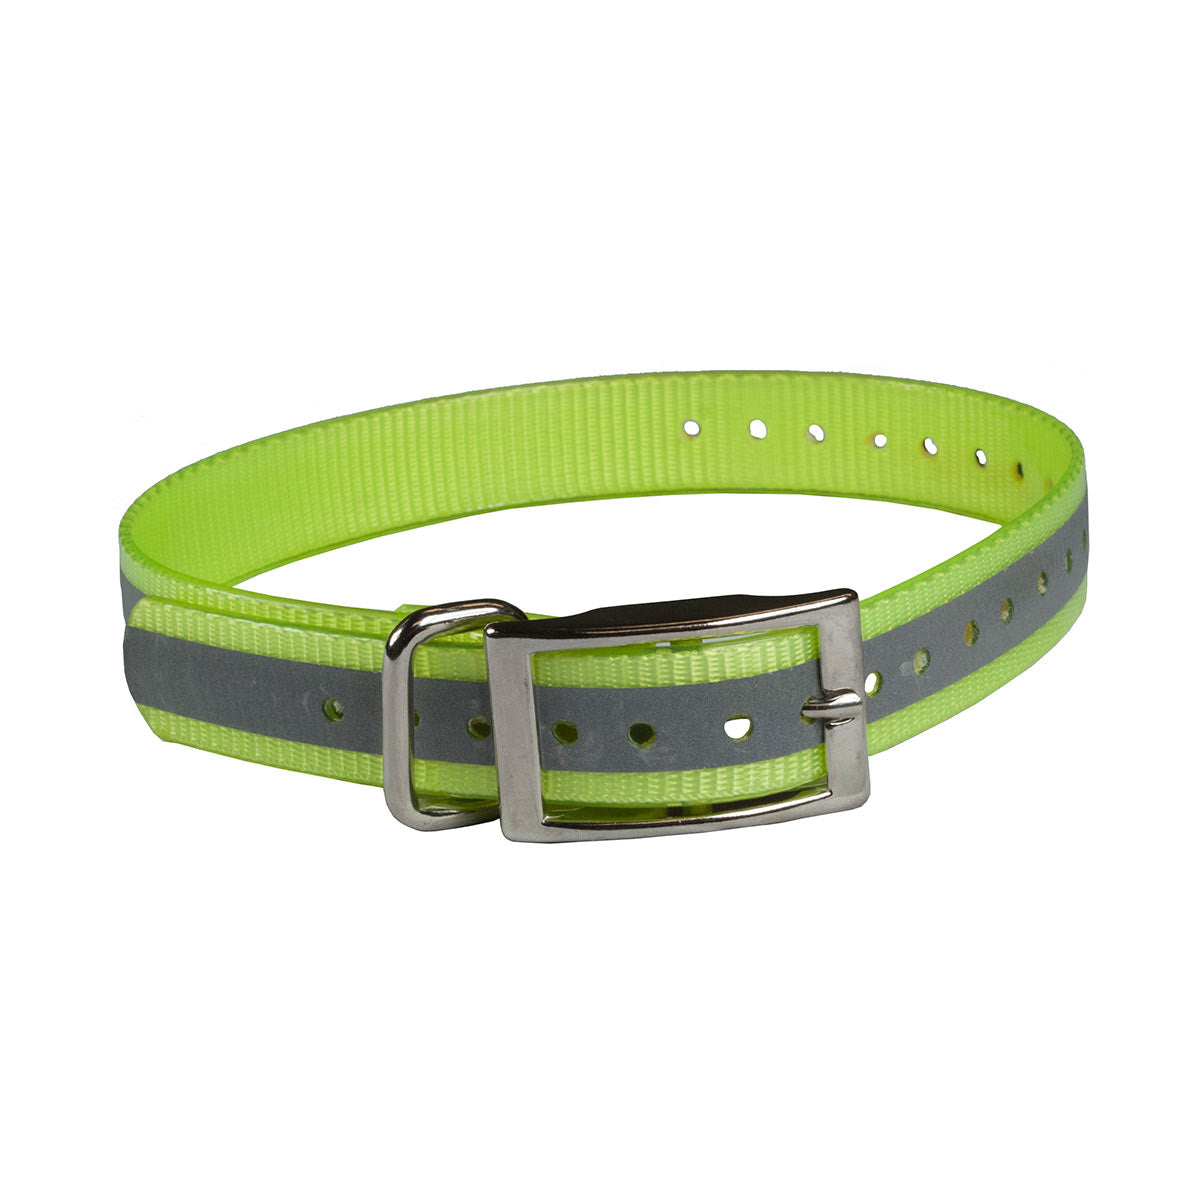 "The Buzzard's Roost Reflective Collar Strap 1"" Yellow 1"" x 24"" Dog GPS Tracking - London the Local"